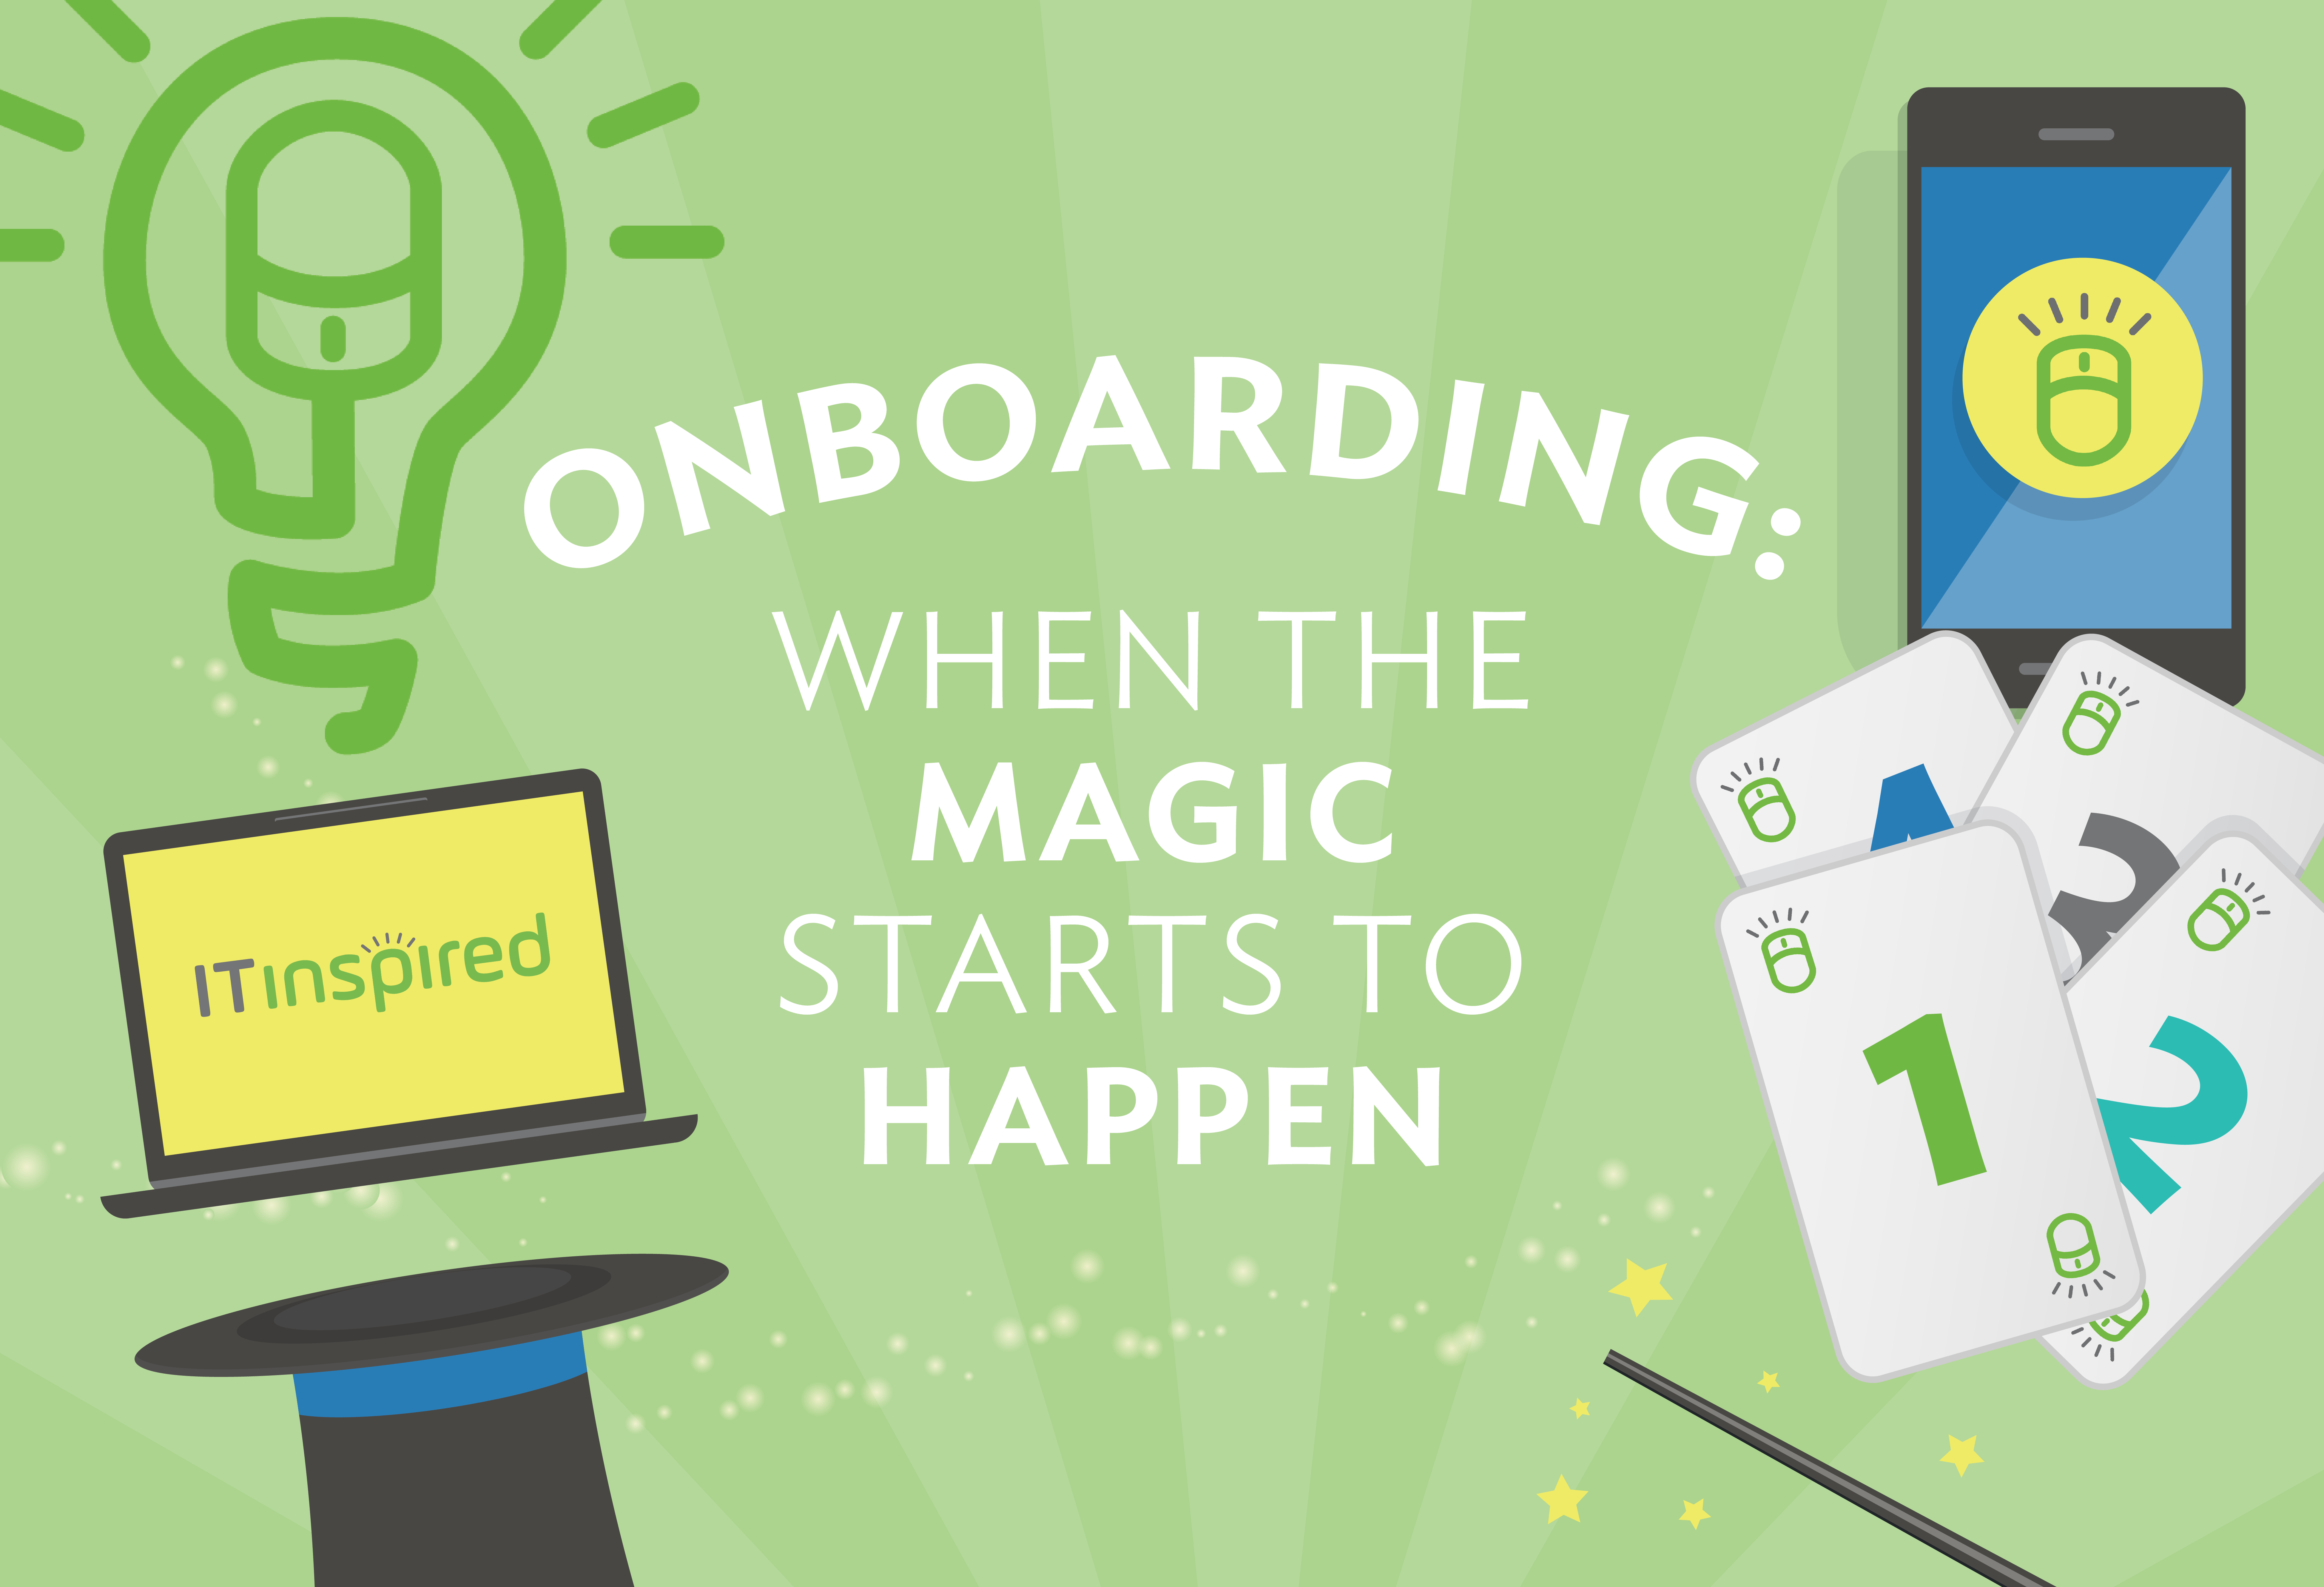 Onboarding: When the Magic Starts to Happen